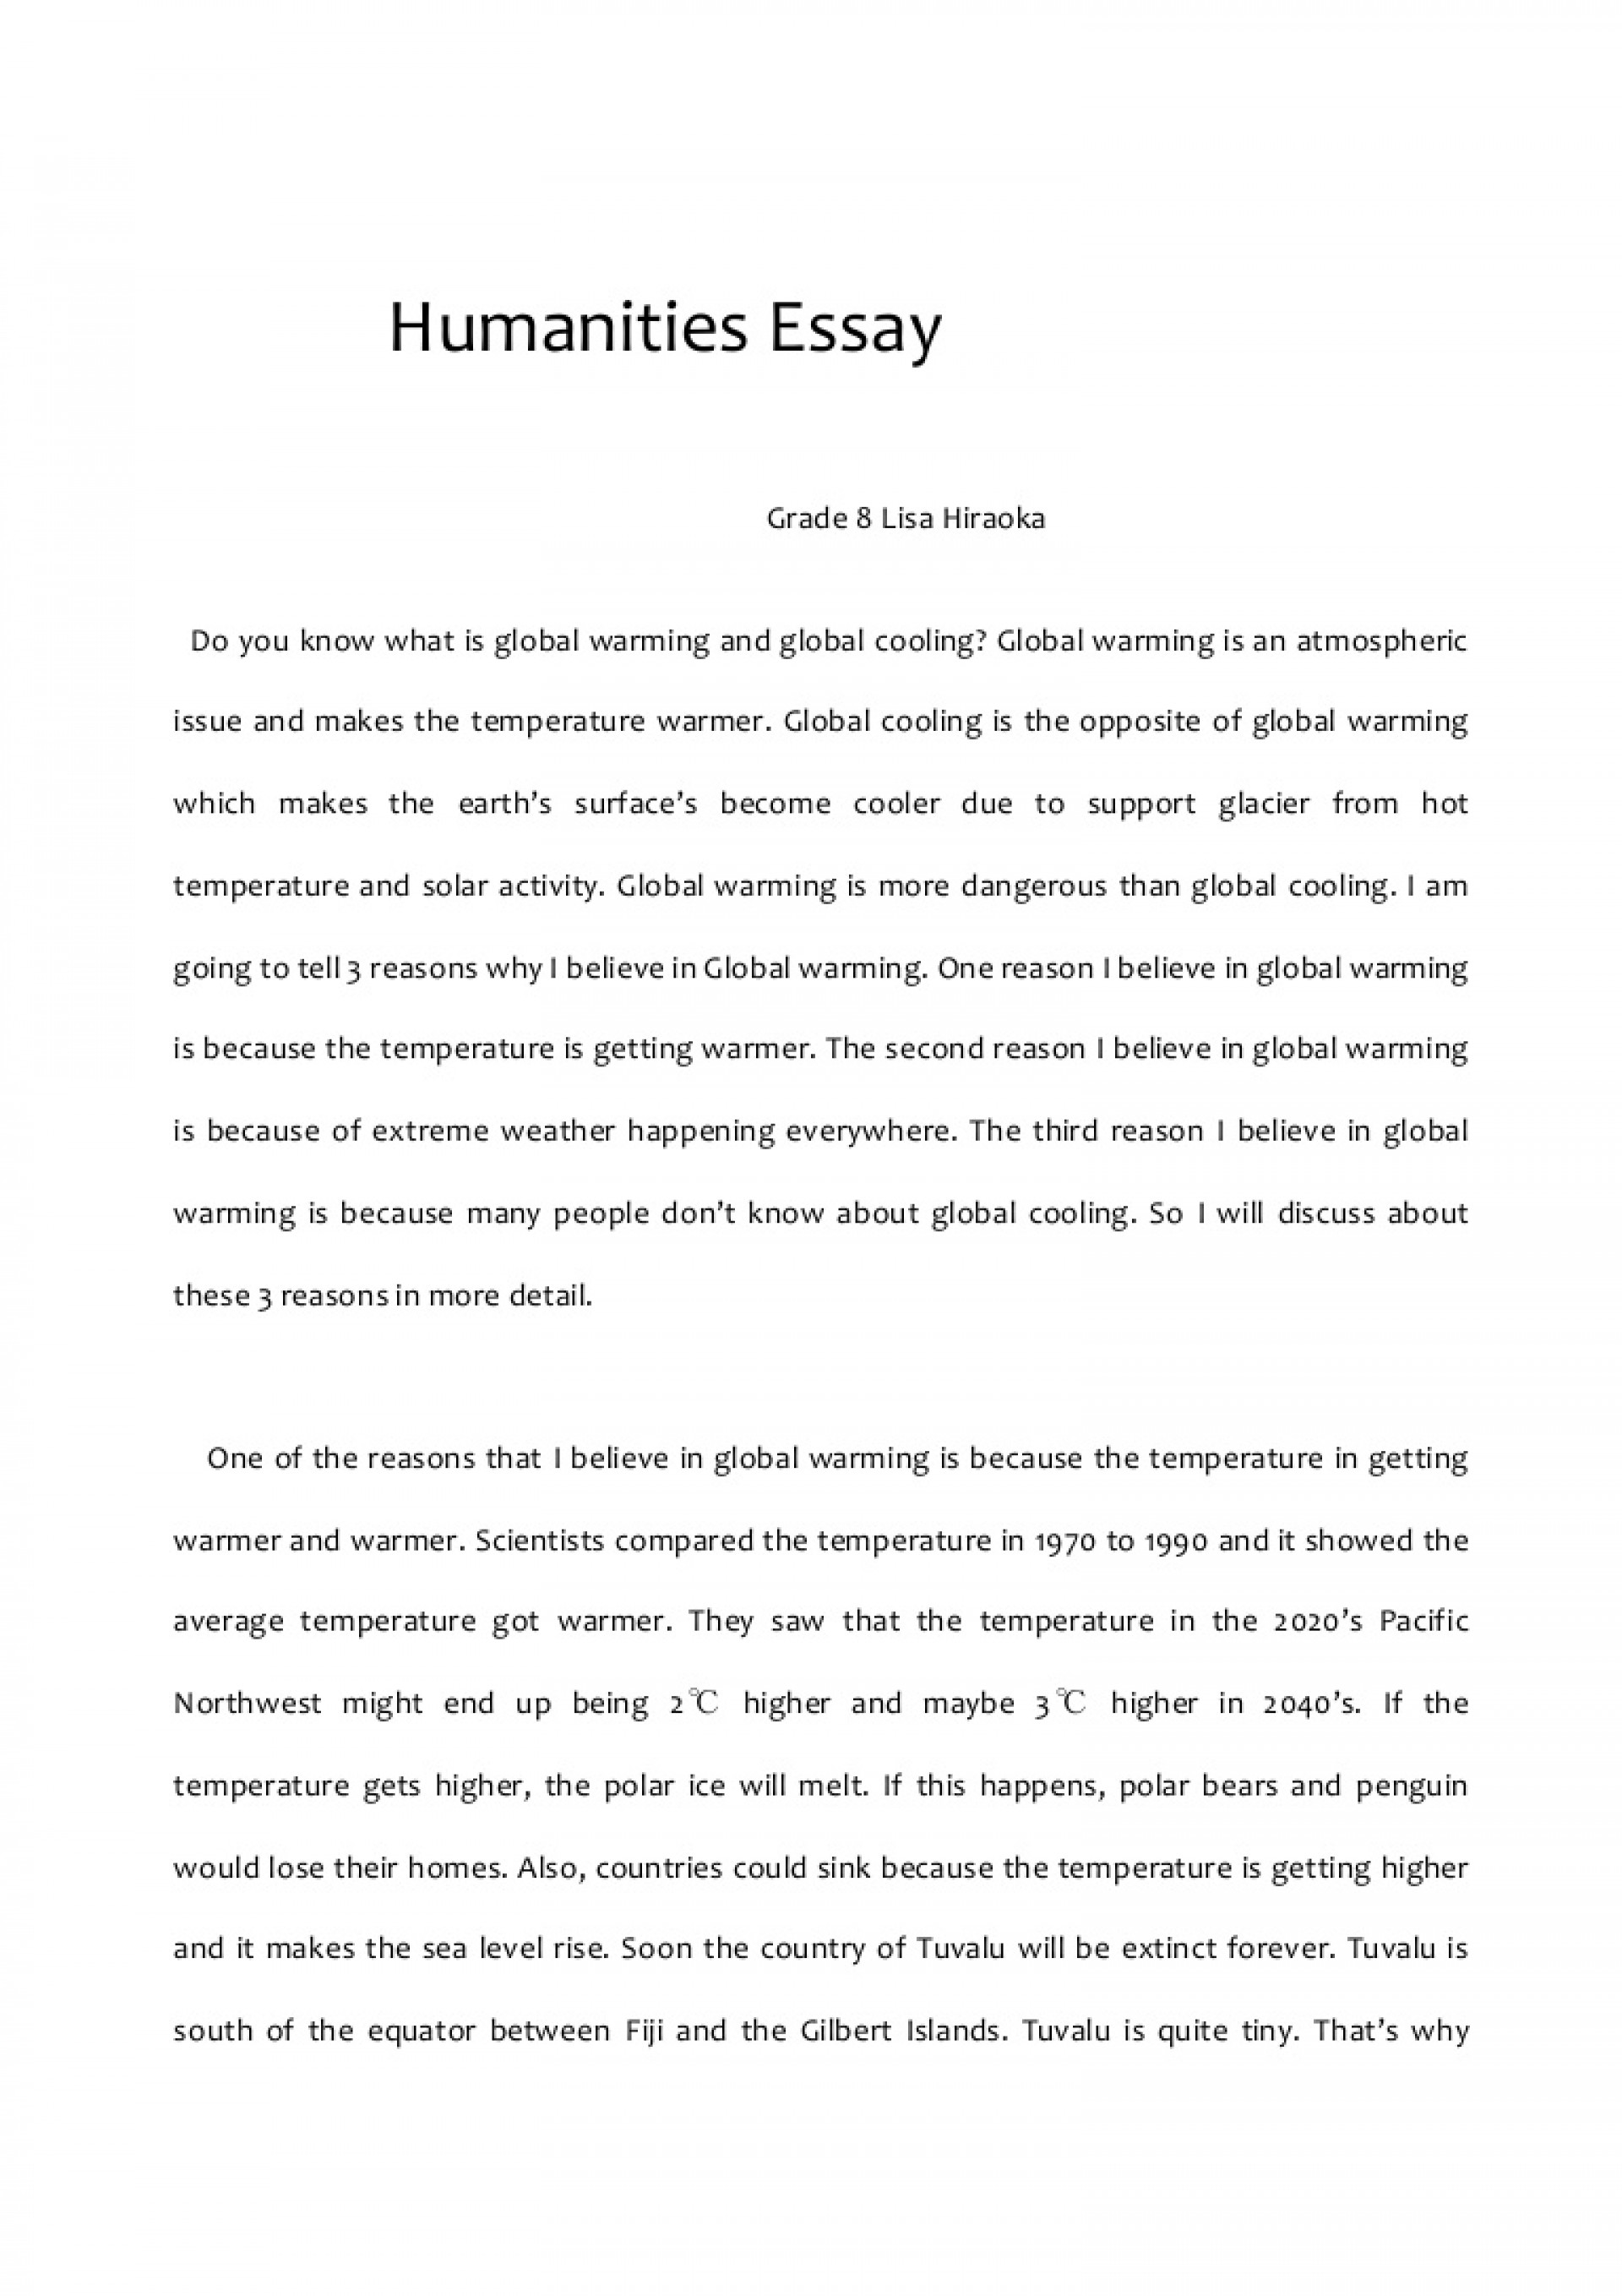 005 I Believe Essay Topics Best Narrative This Samples Humanitiesessay Phpapp02 Thumbn Good Template Example Stupendous Examples Personal College 1920